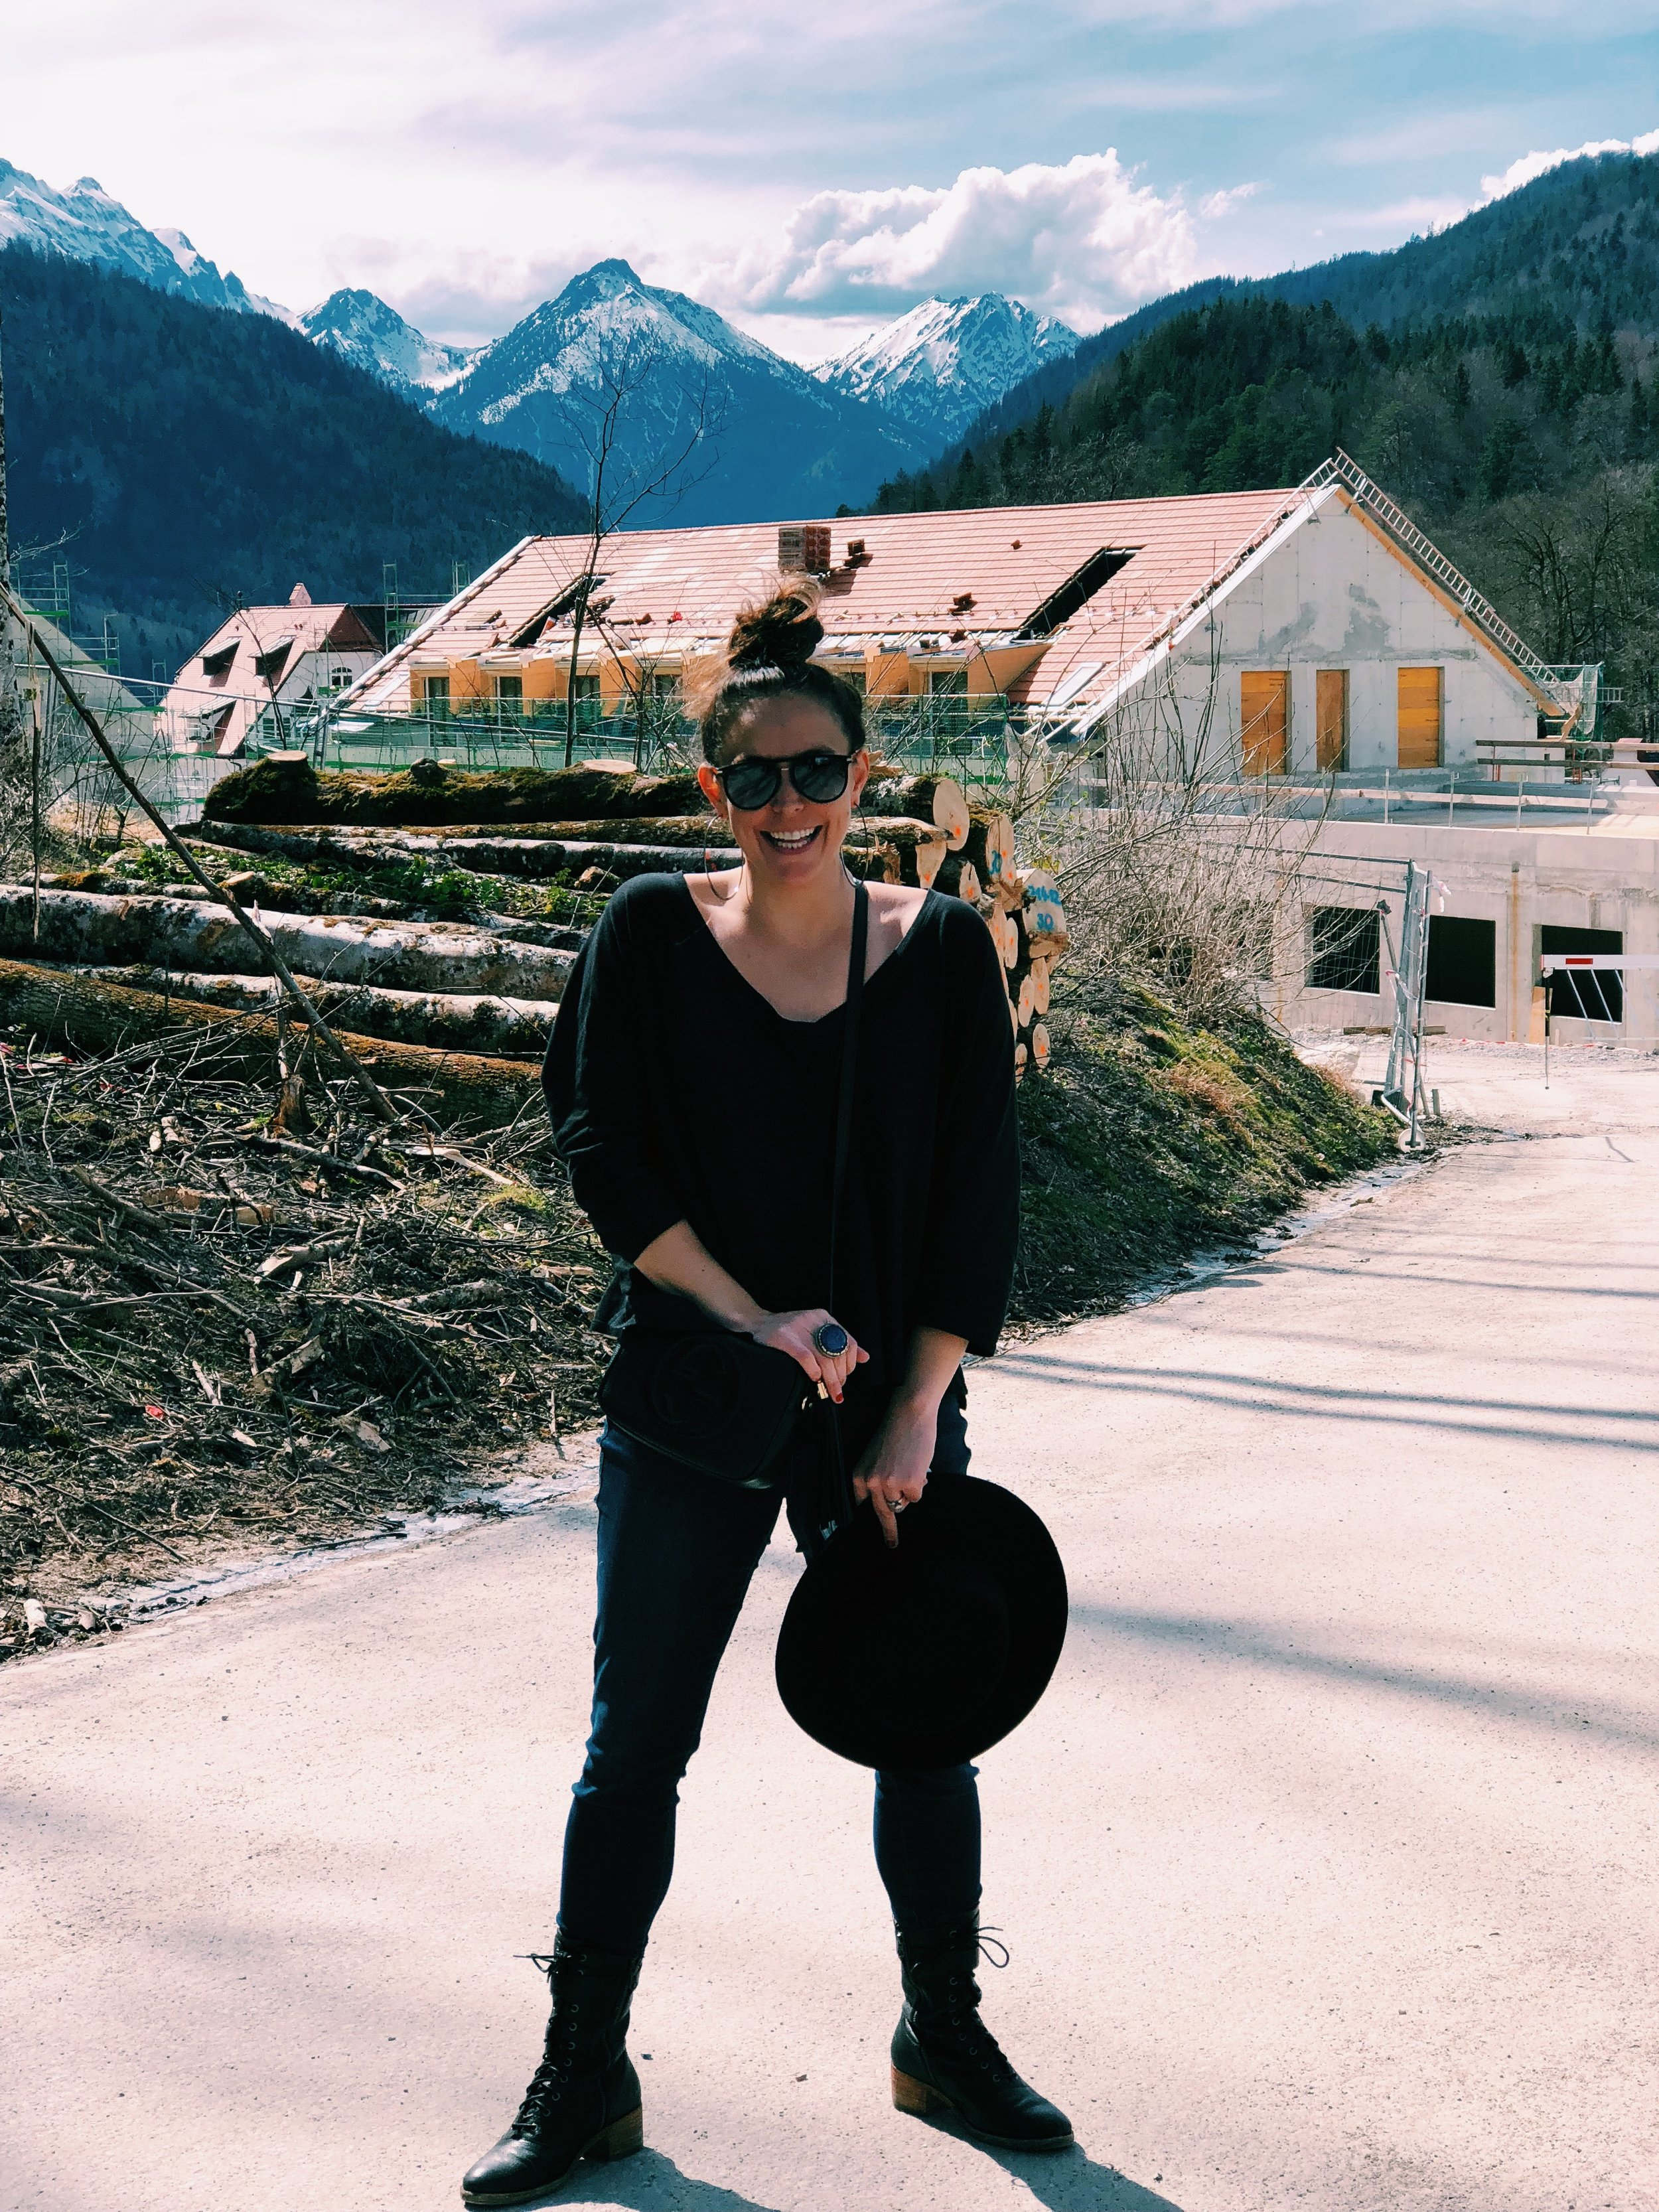 Bavaria, Germany: Wearing my basic black top, black boots and jeans to see Neuschwanstein Castle. To make the neutrals more exciting, I paired my favorite silver hoops and wide-brimmed black hat.